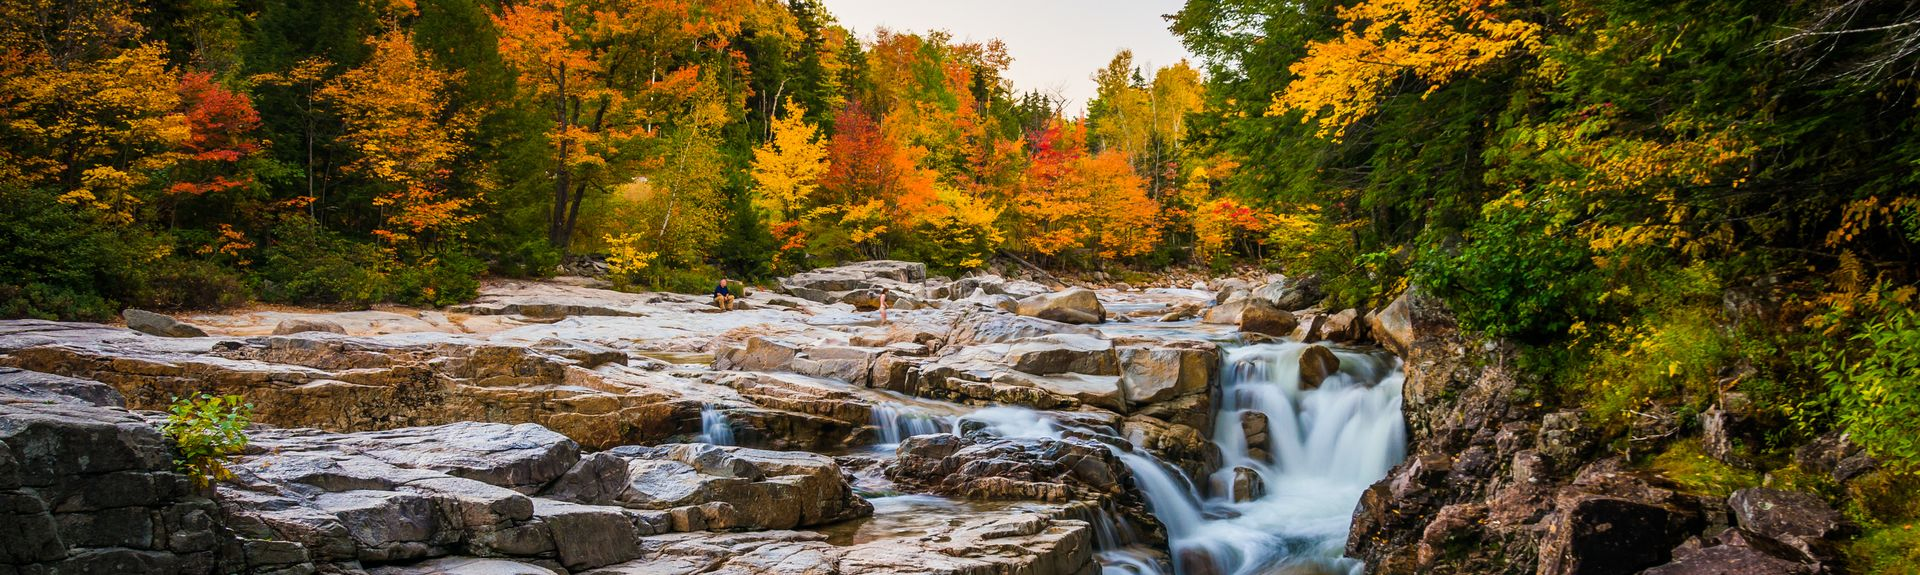 White Mountains, New Hampshire, United States of America